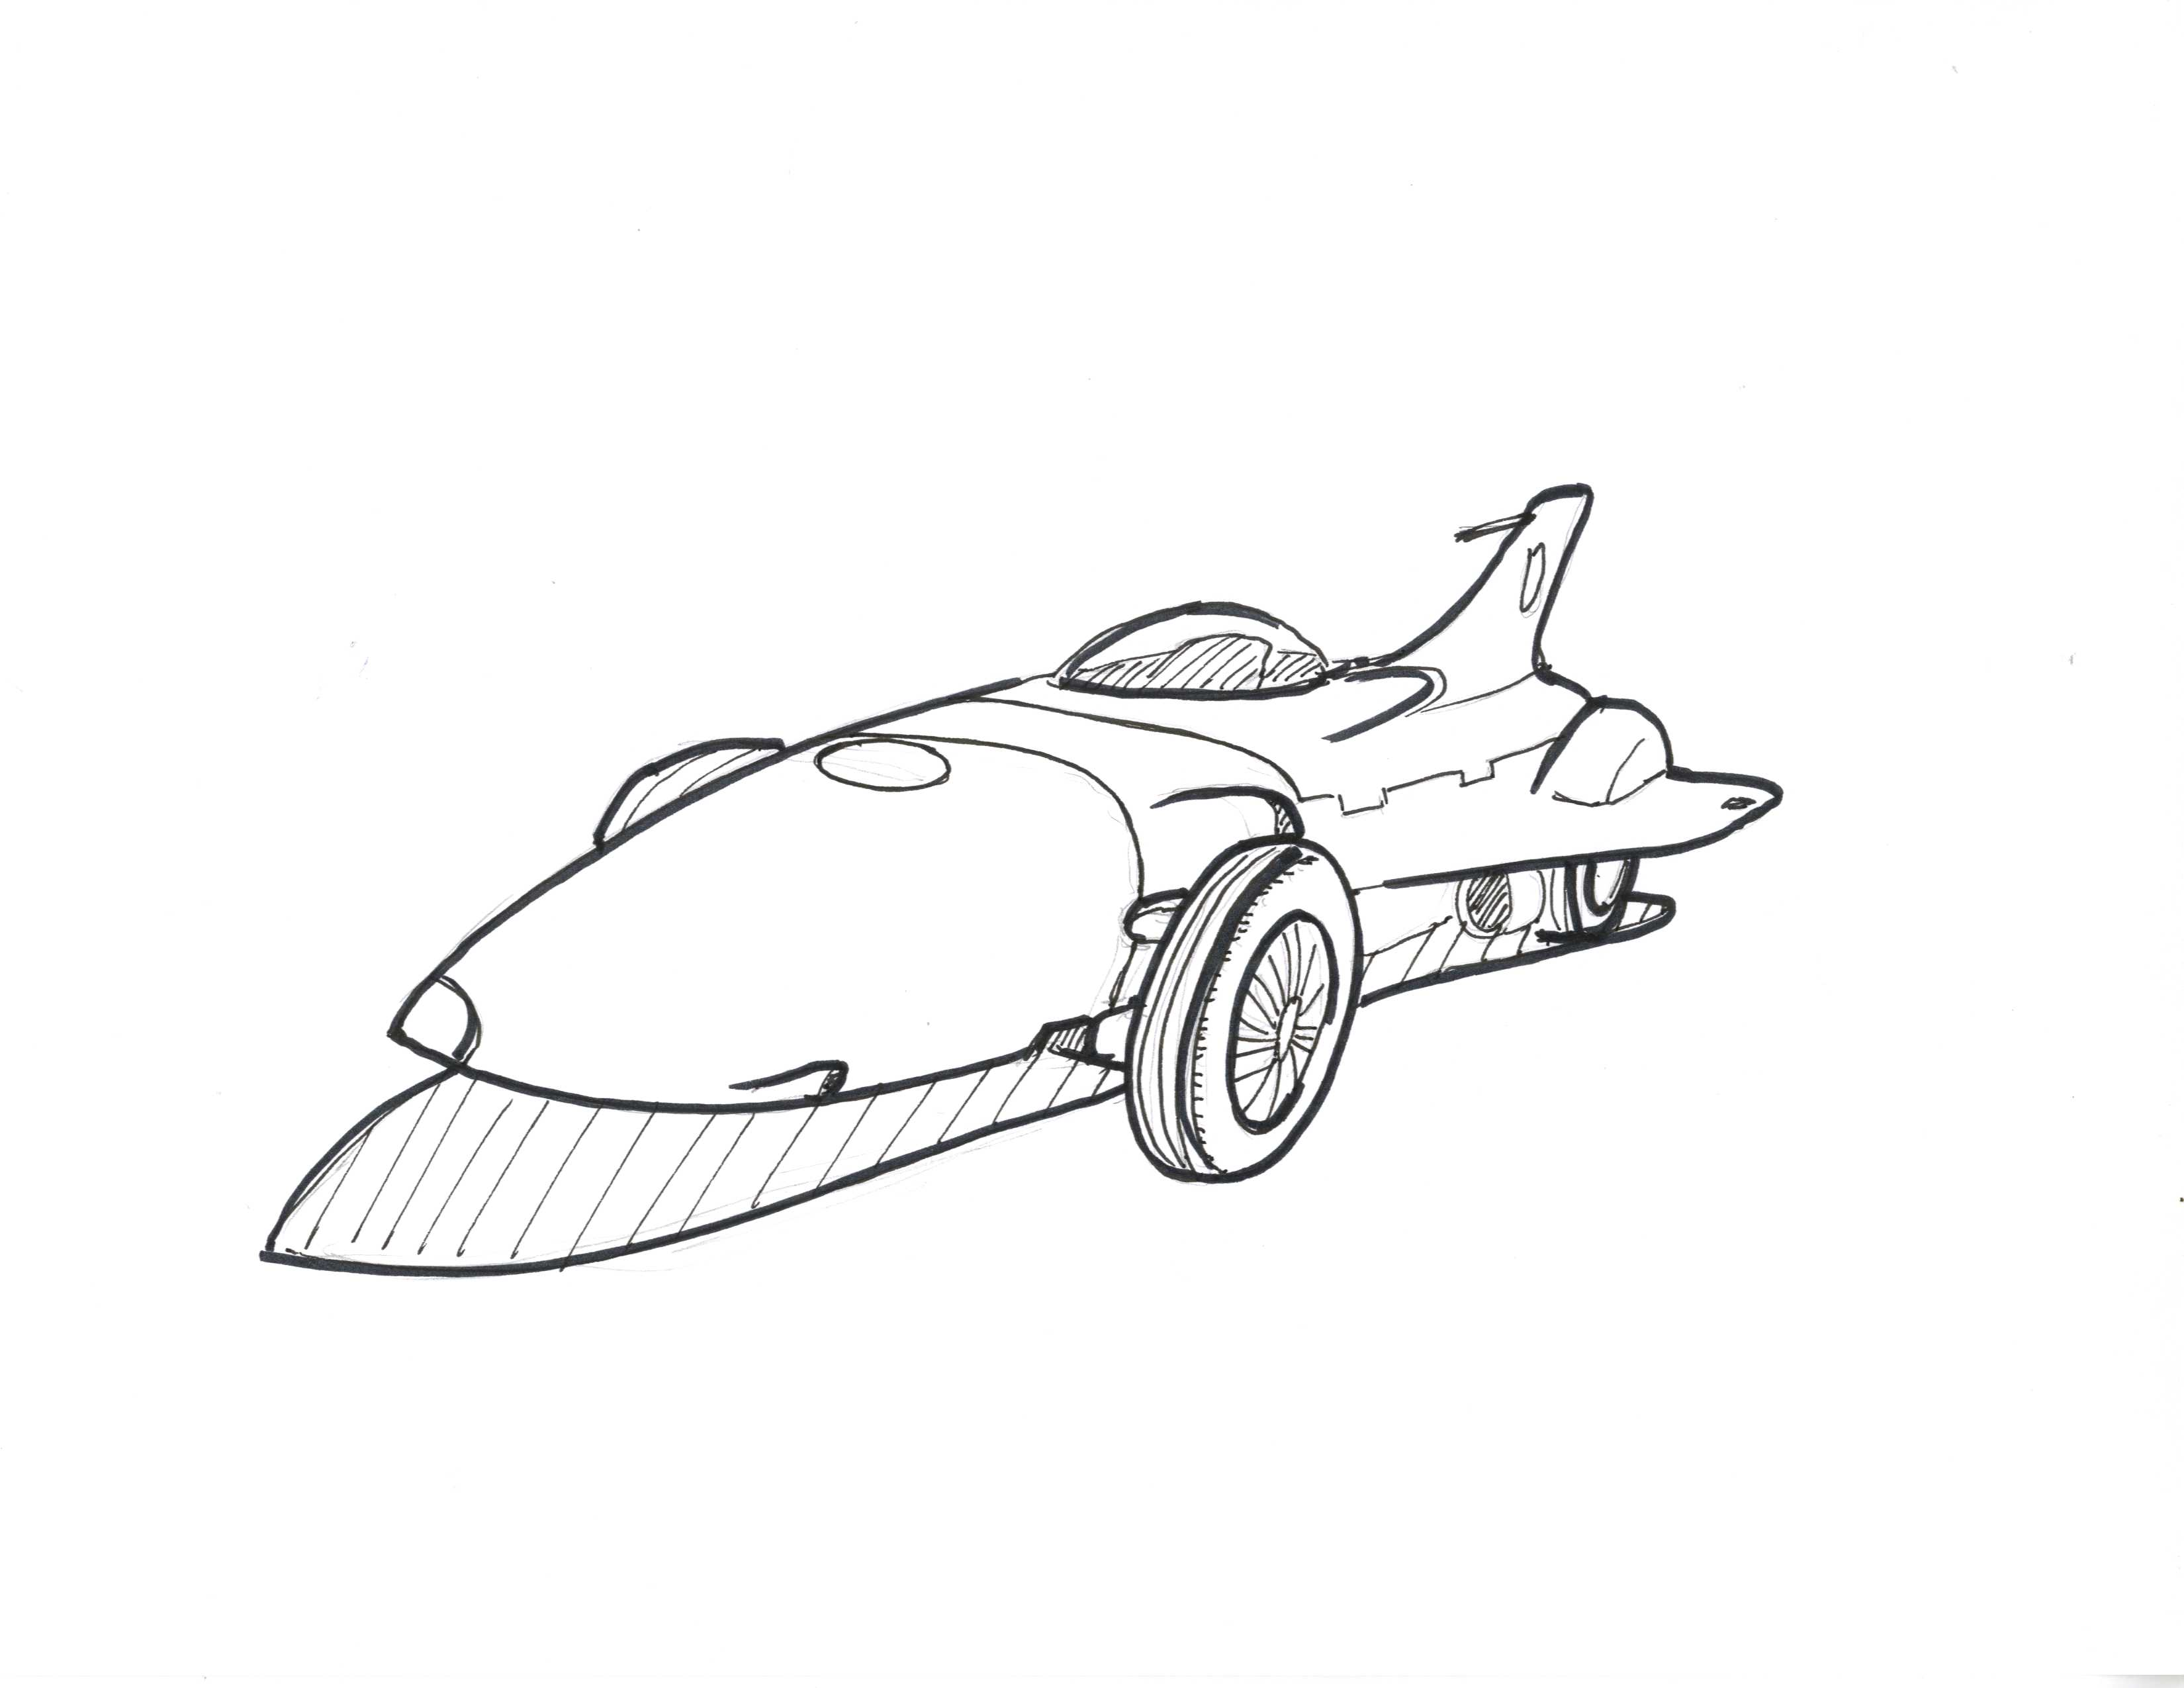 But look at this concept car he made it looks so close to an airplane that it is more like an airplane with four wheels